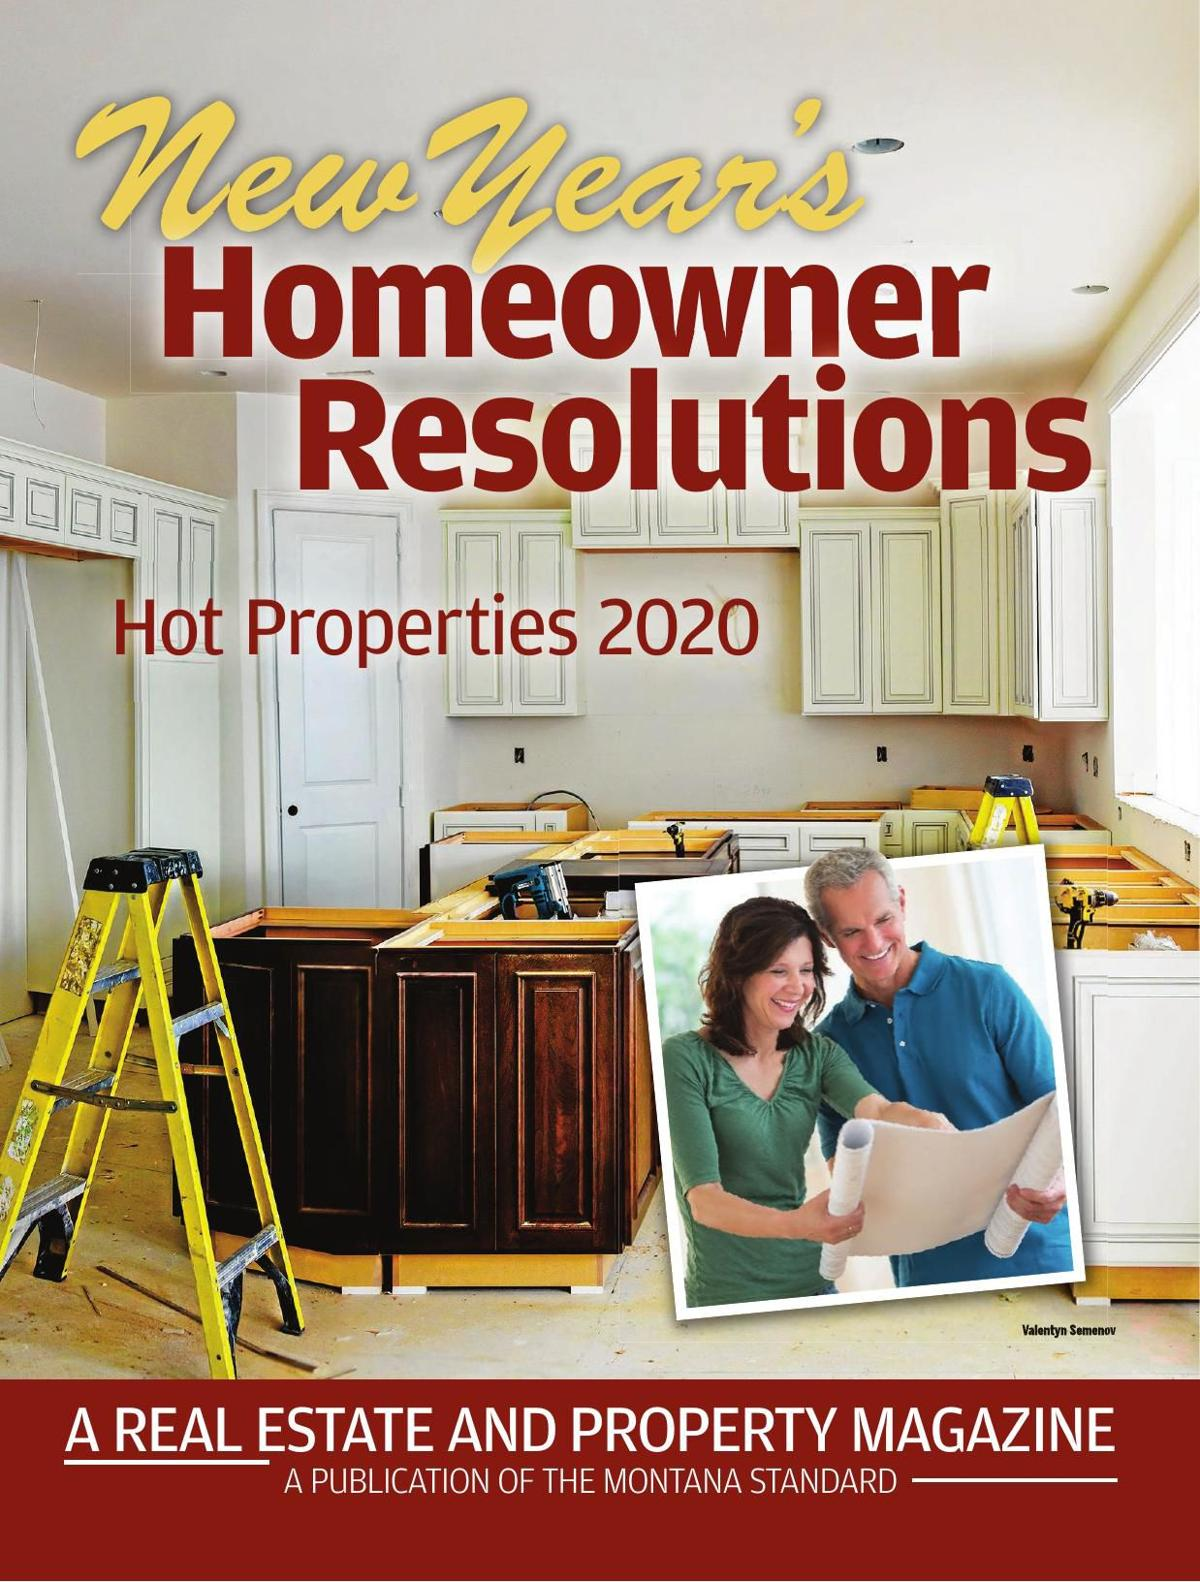 New Year's Homeowner Resolutions